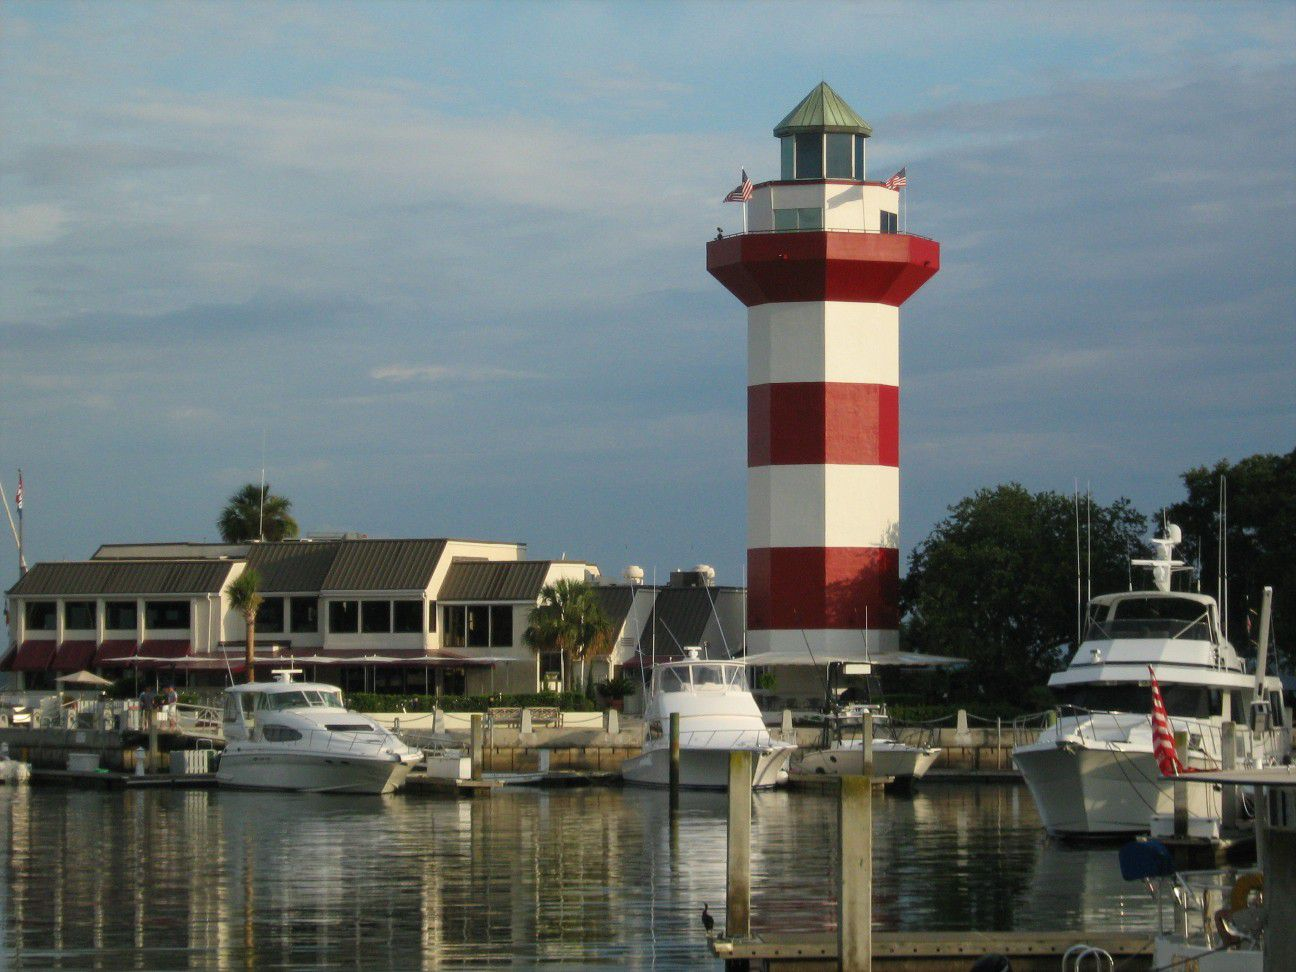 Hilton Head Island may only be 12 miles by 5 miles wide